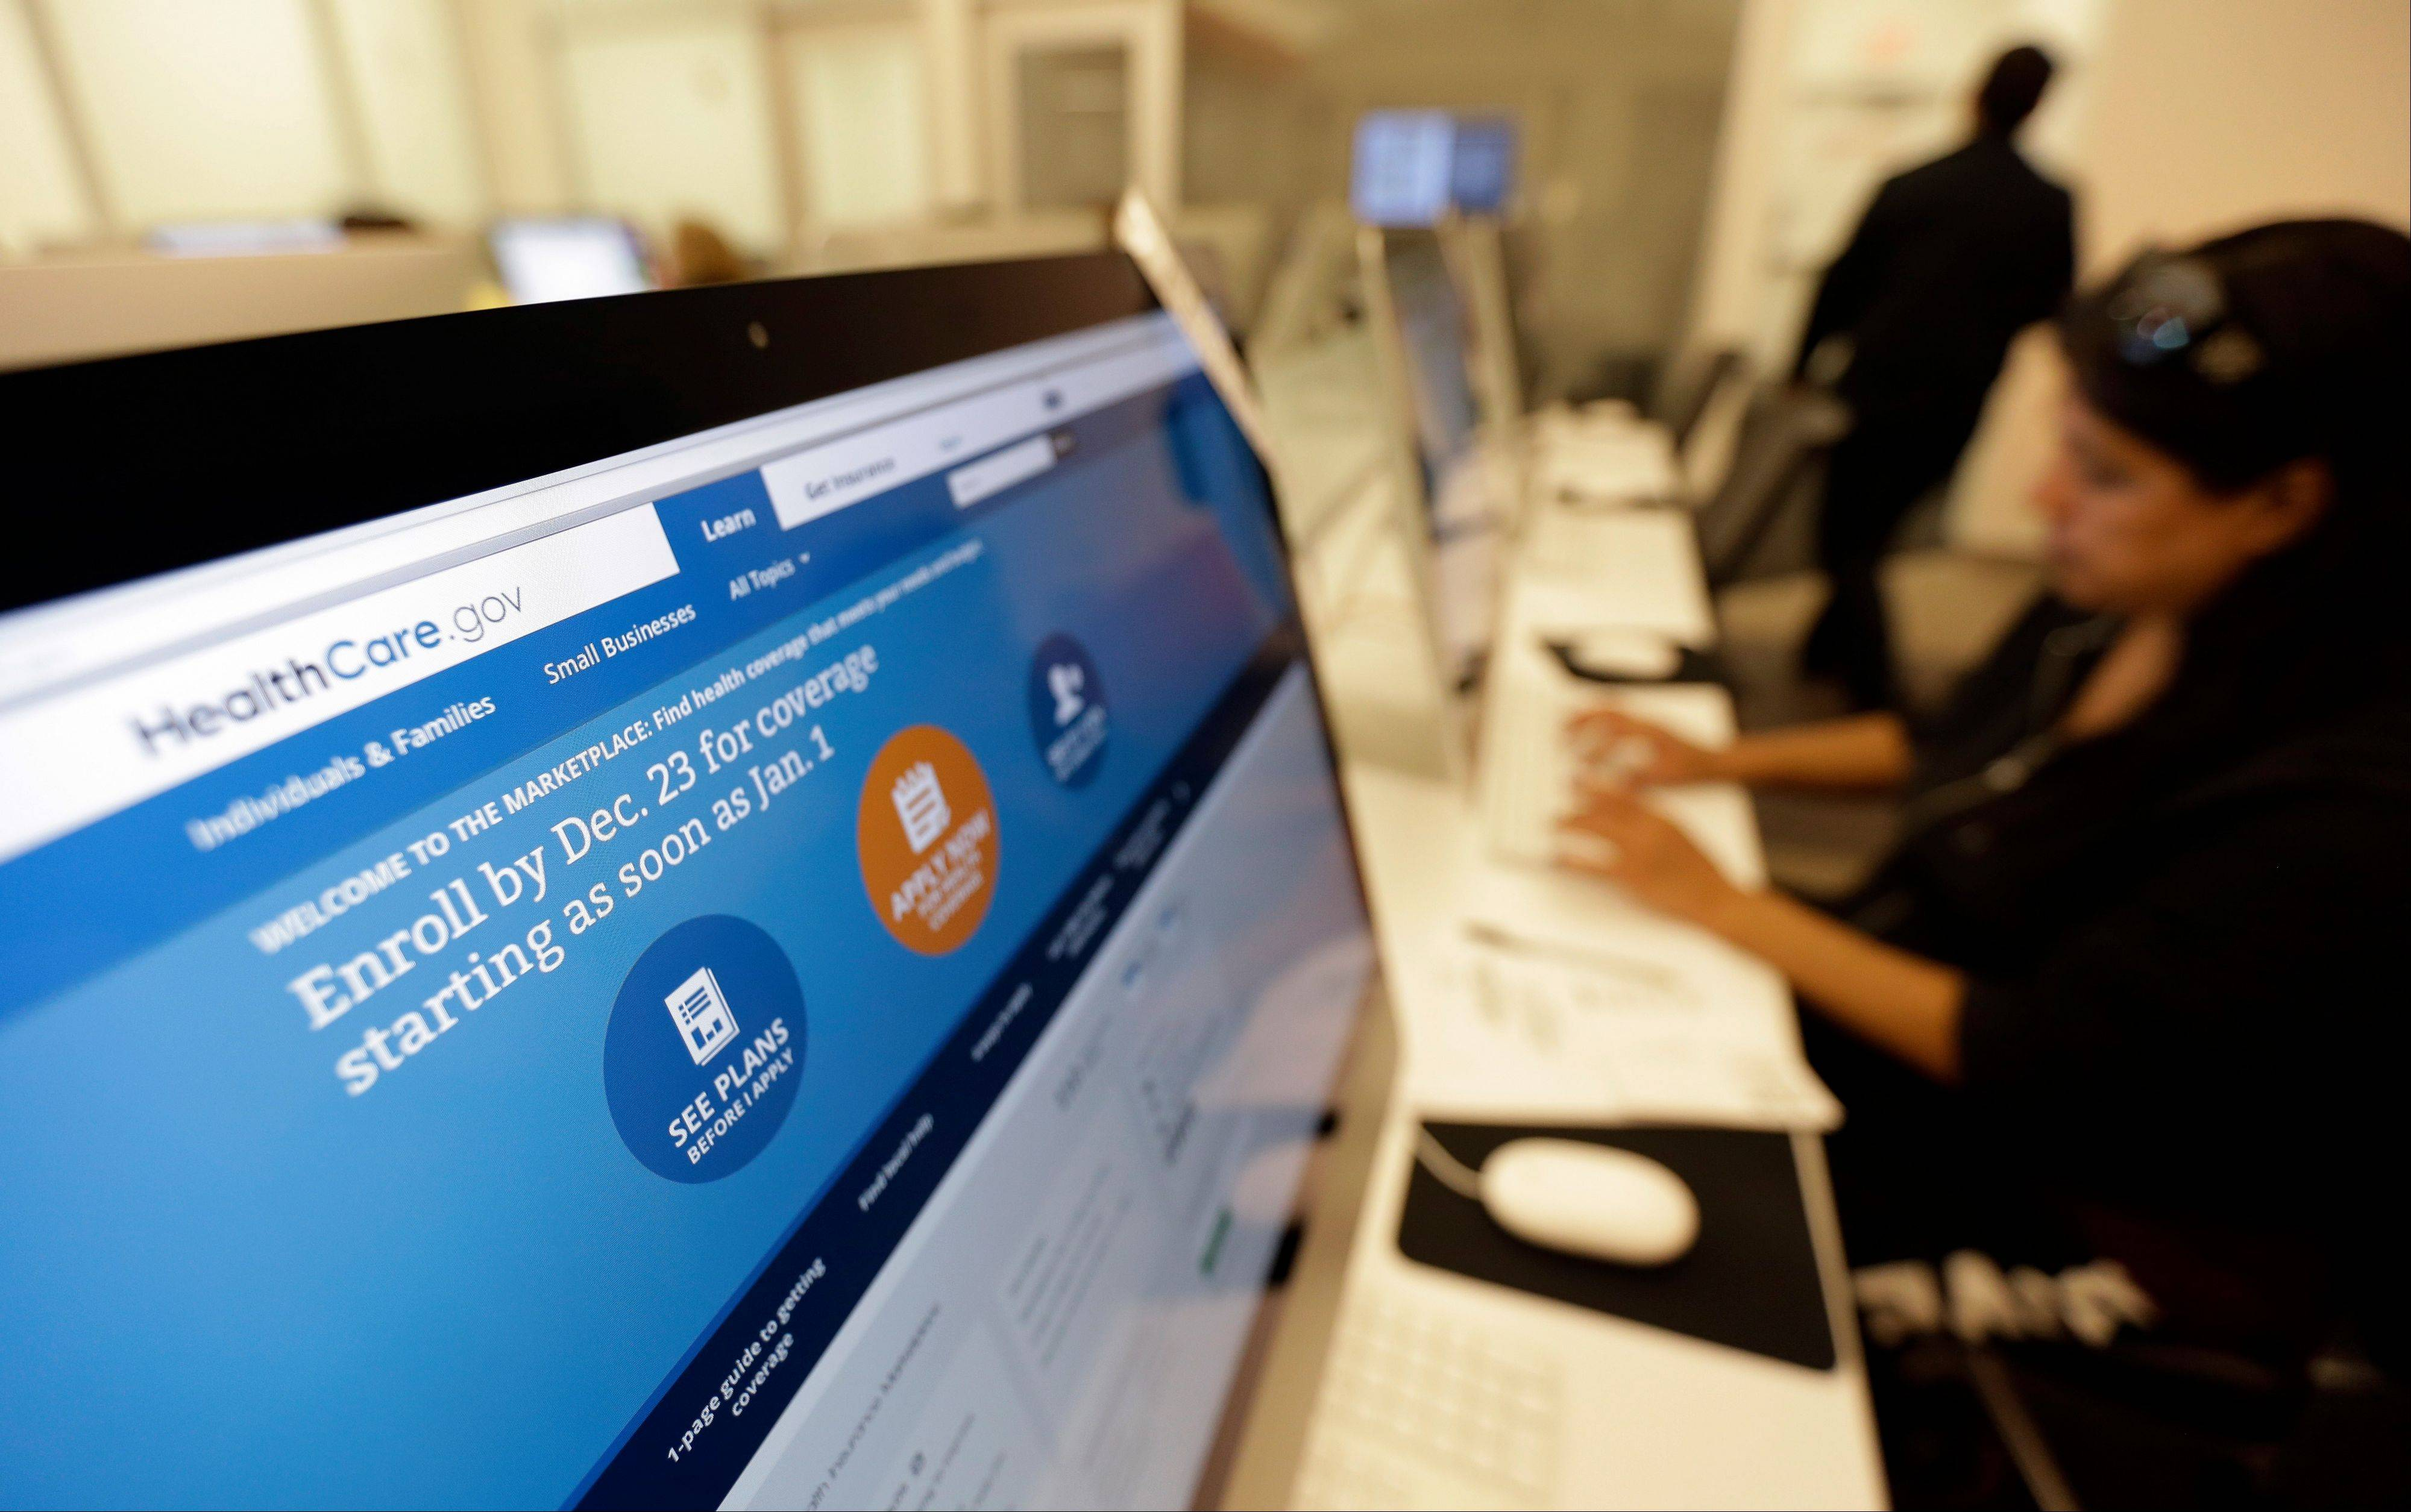 For many Americans, problems with the government's main health care website carry a bigger risk than frequent crashes, as higher premiums could follow if technical troubles scare off young customers crucial to the overhaul's insurance coverage expansions.